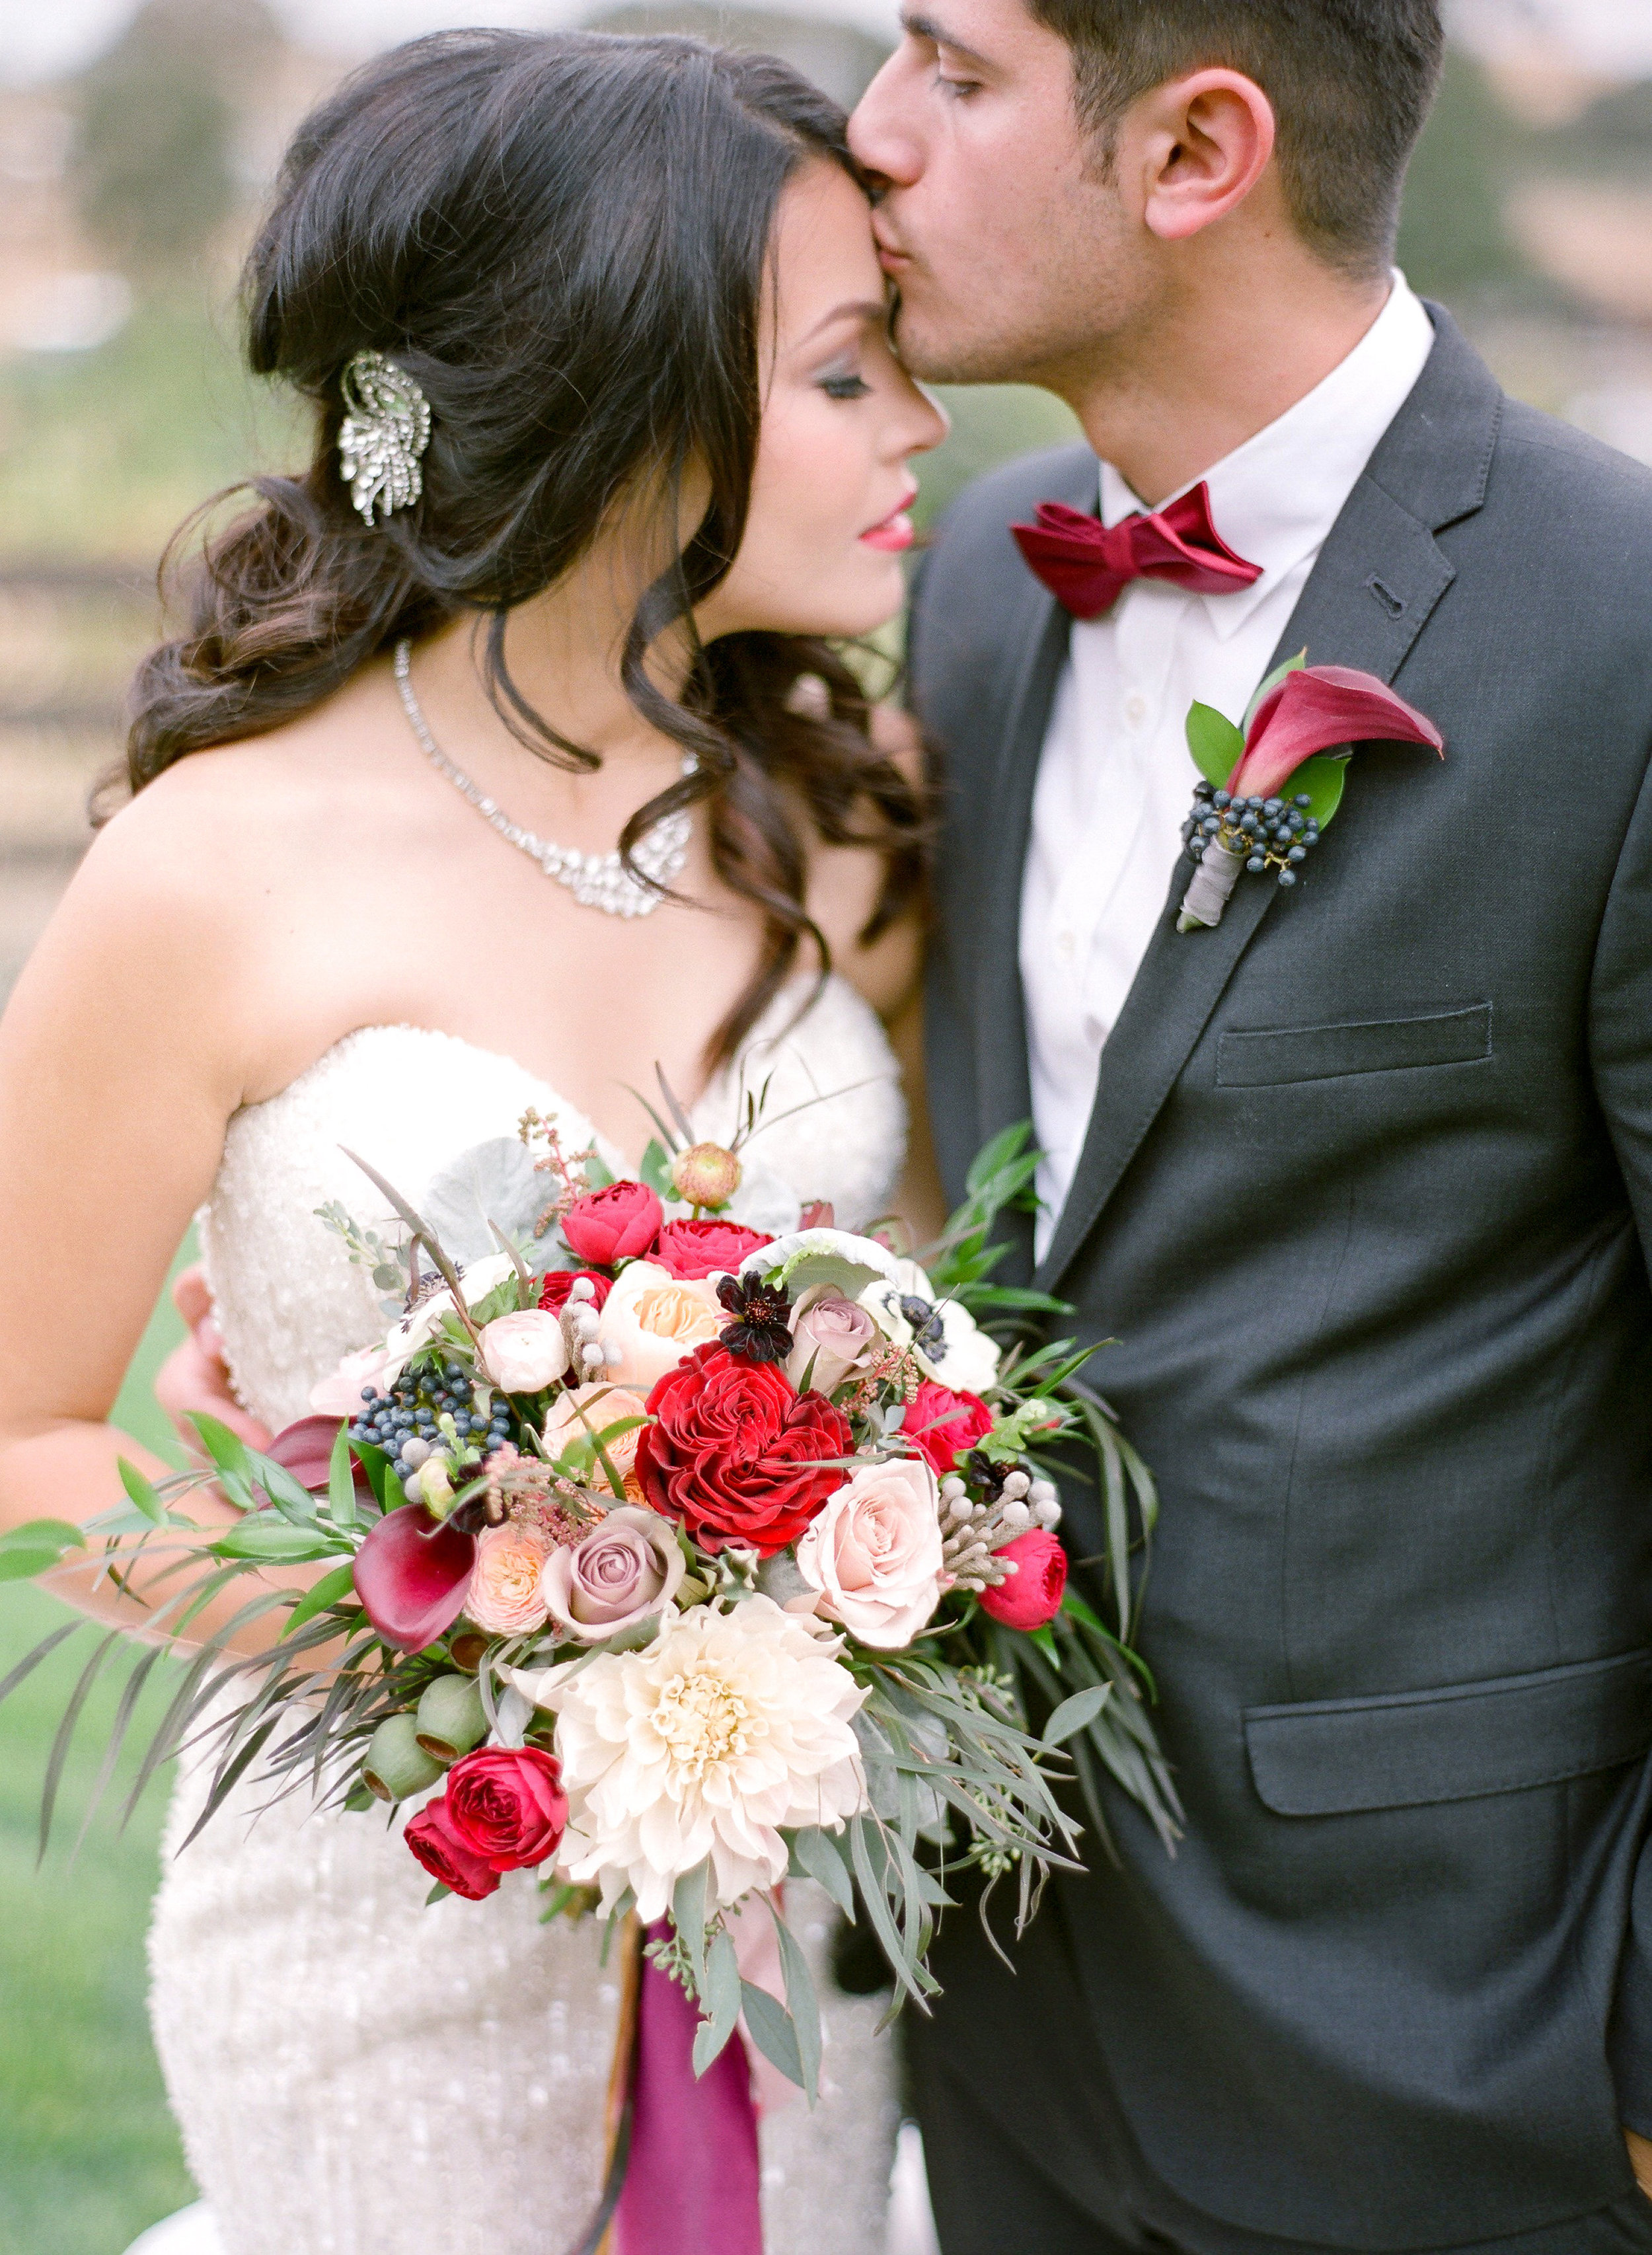 Amador_County_Wedding_Couple_Kiss_Bouquet_Boutonniere_Rancho_Victoria_Vineyard_Northern_California.jpg